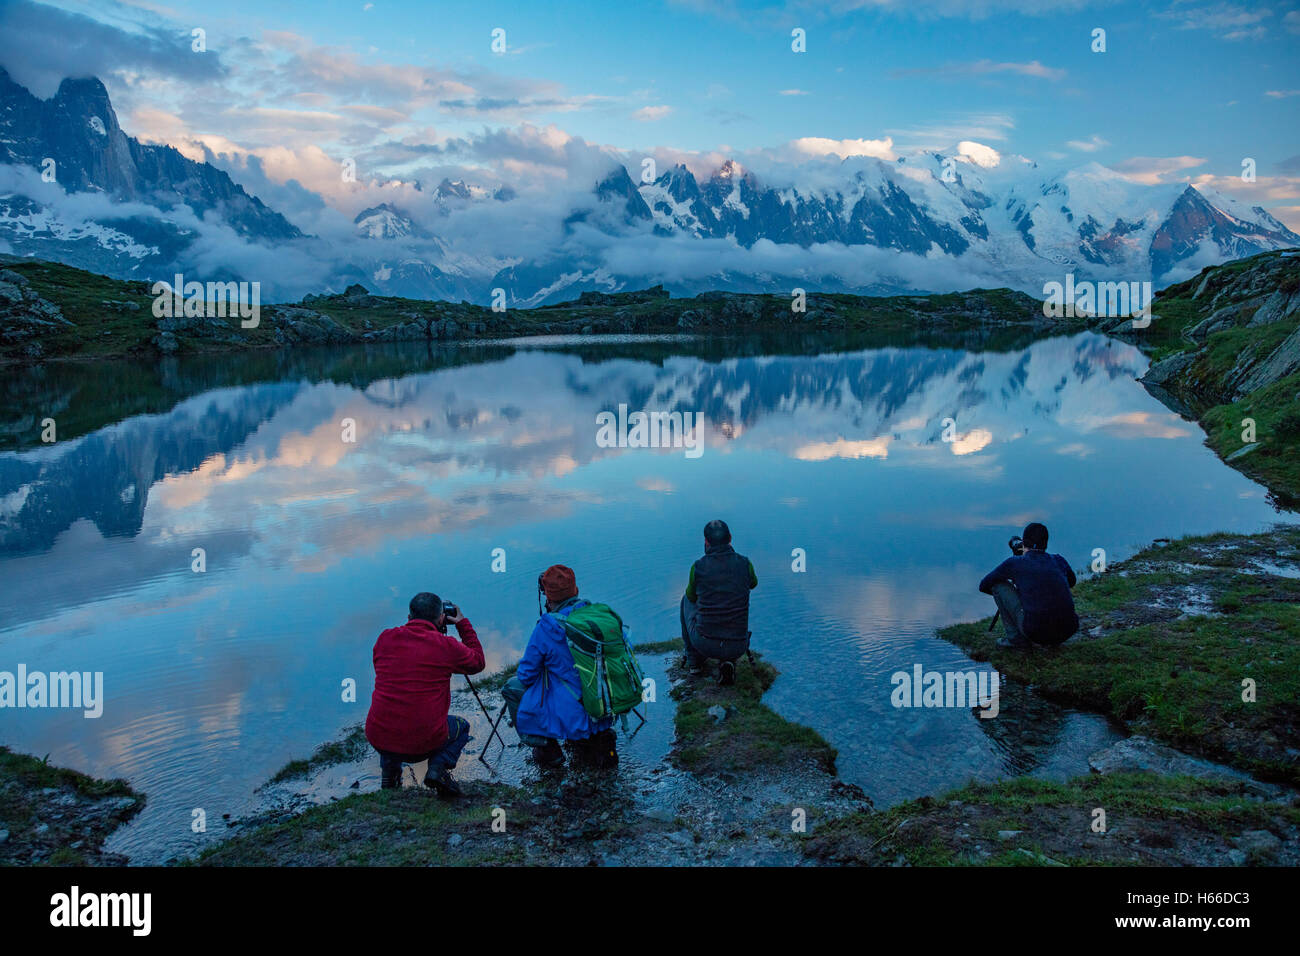 Photographers beside Lac des Cheserys, beneath the Mont Blanc massif, Chamonix Valley, French Alps, France. - Stock Image